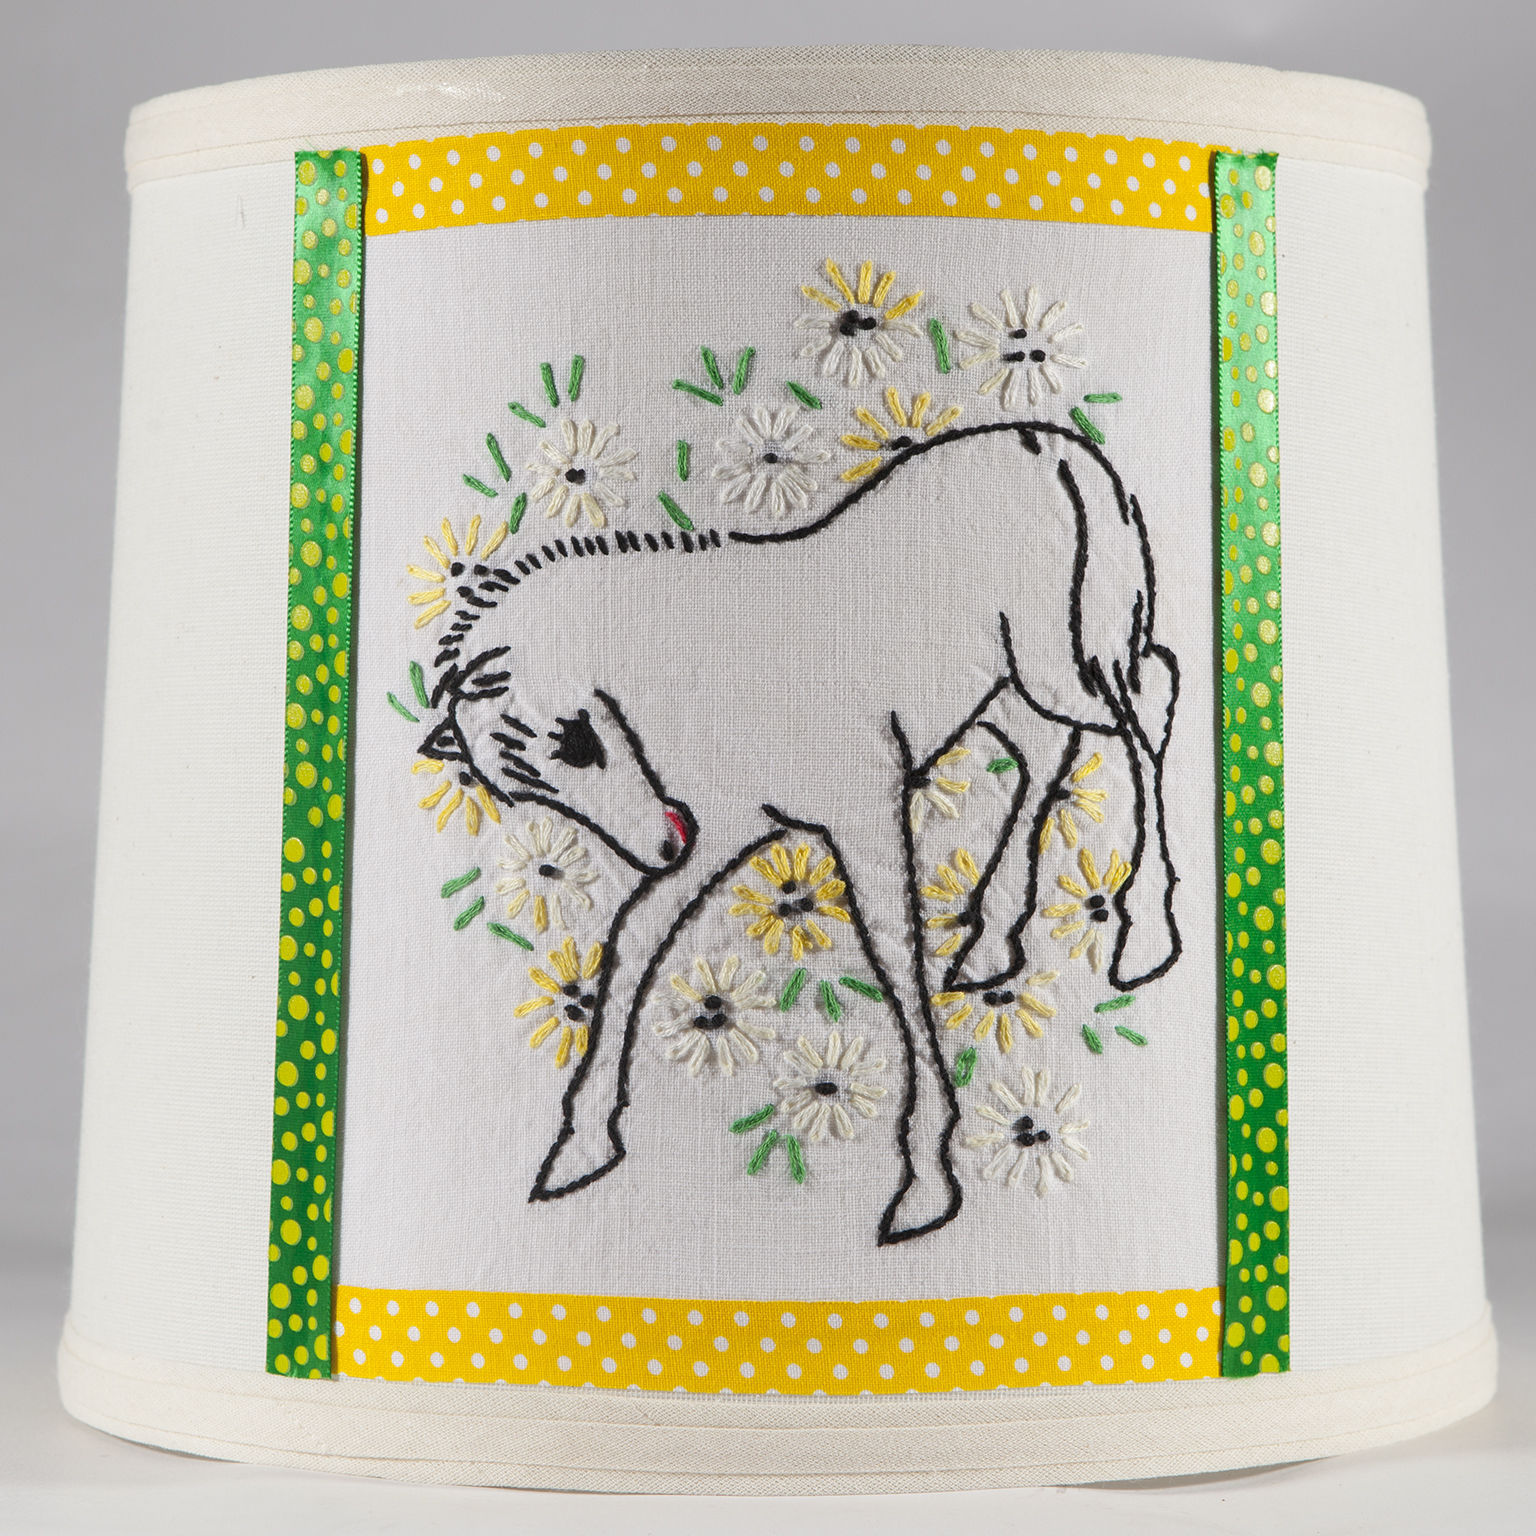 Vintage Hand Embroidered Horse Quilt Piece On New Lamp Shade - Free Shipping